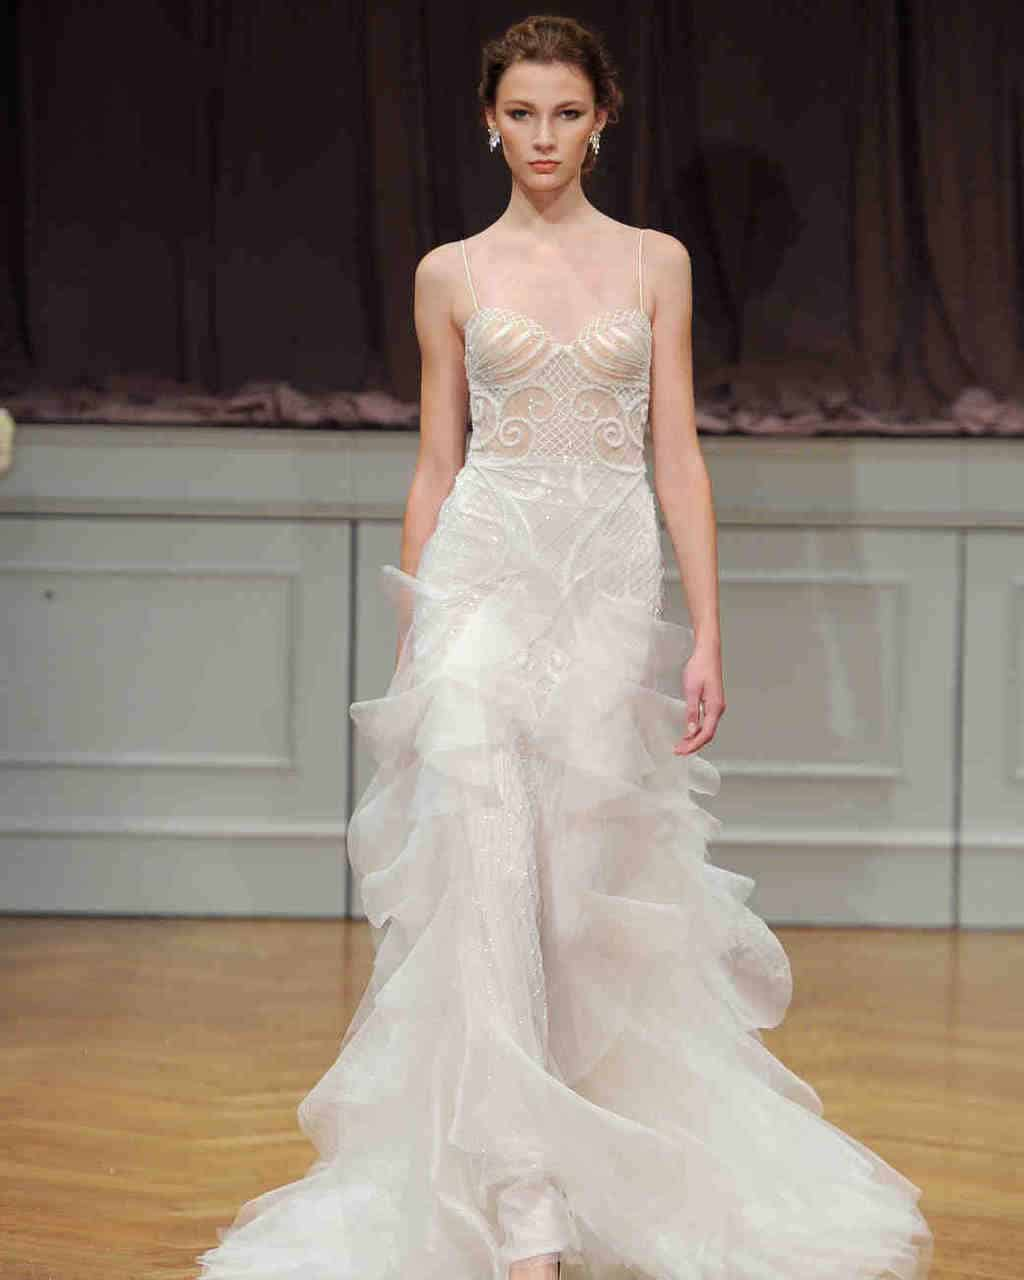 alon-livne-white-wedding-dress-fall2017-6203351-032_vert